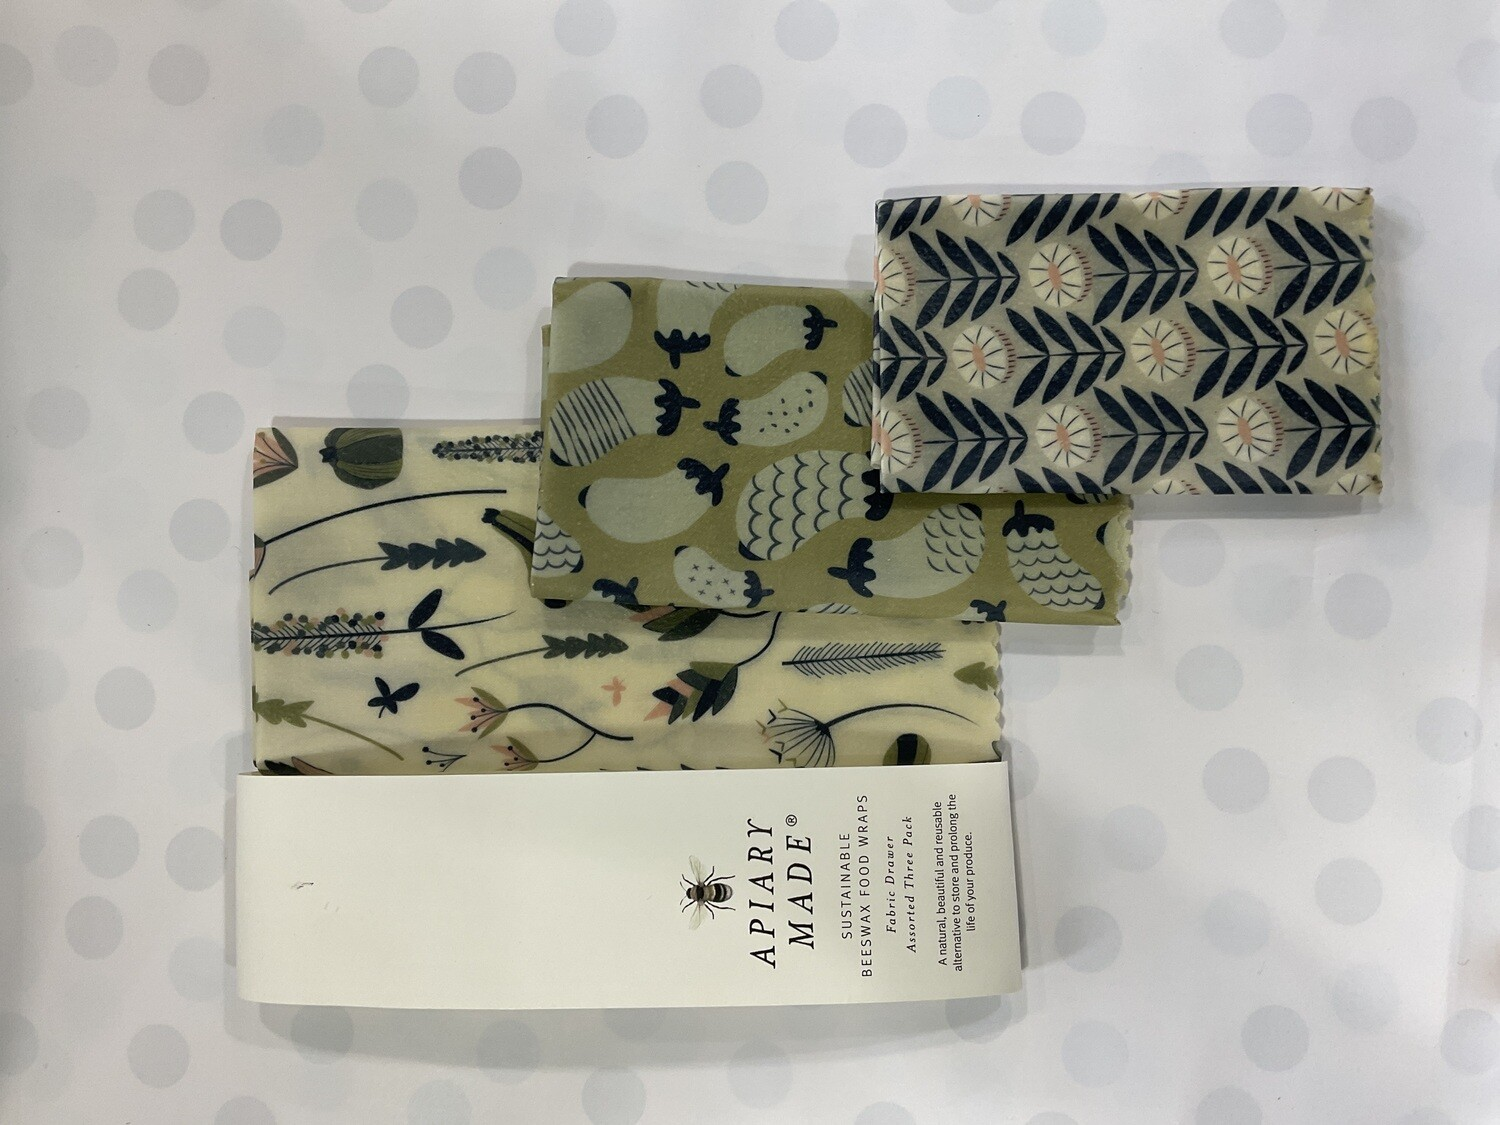 APIARY MADE - Sustainable BEESWAX FOOD WRAPS